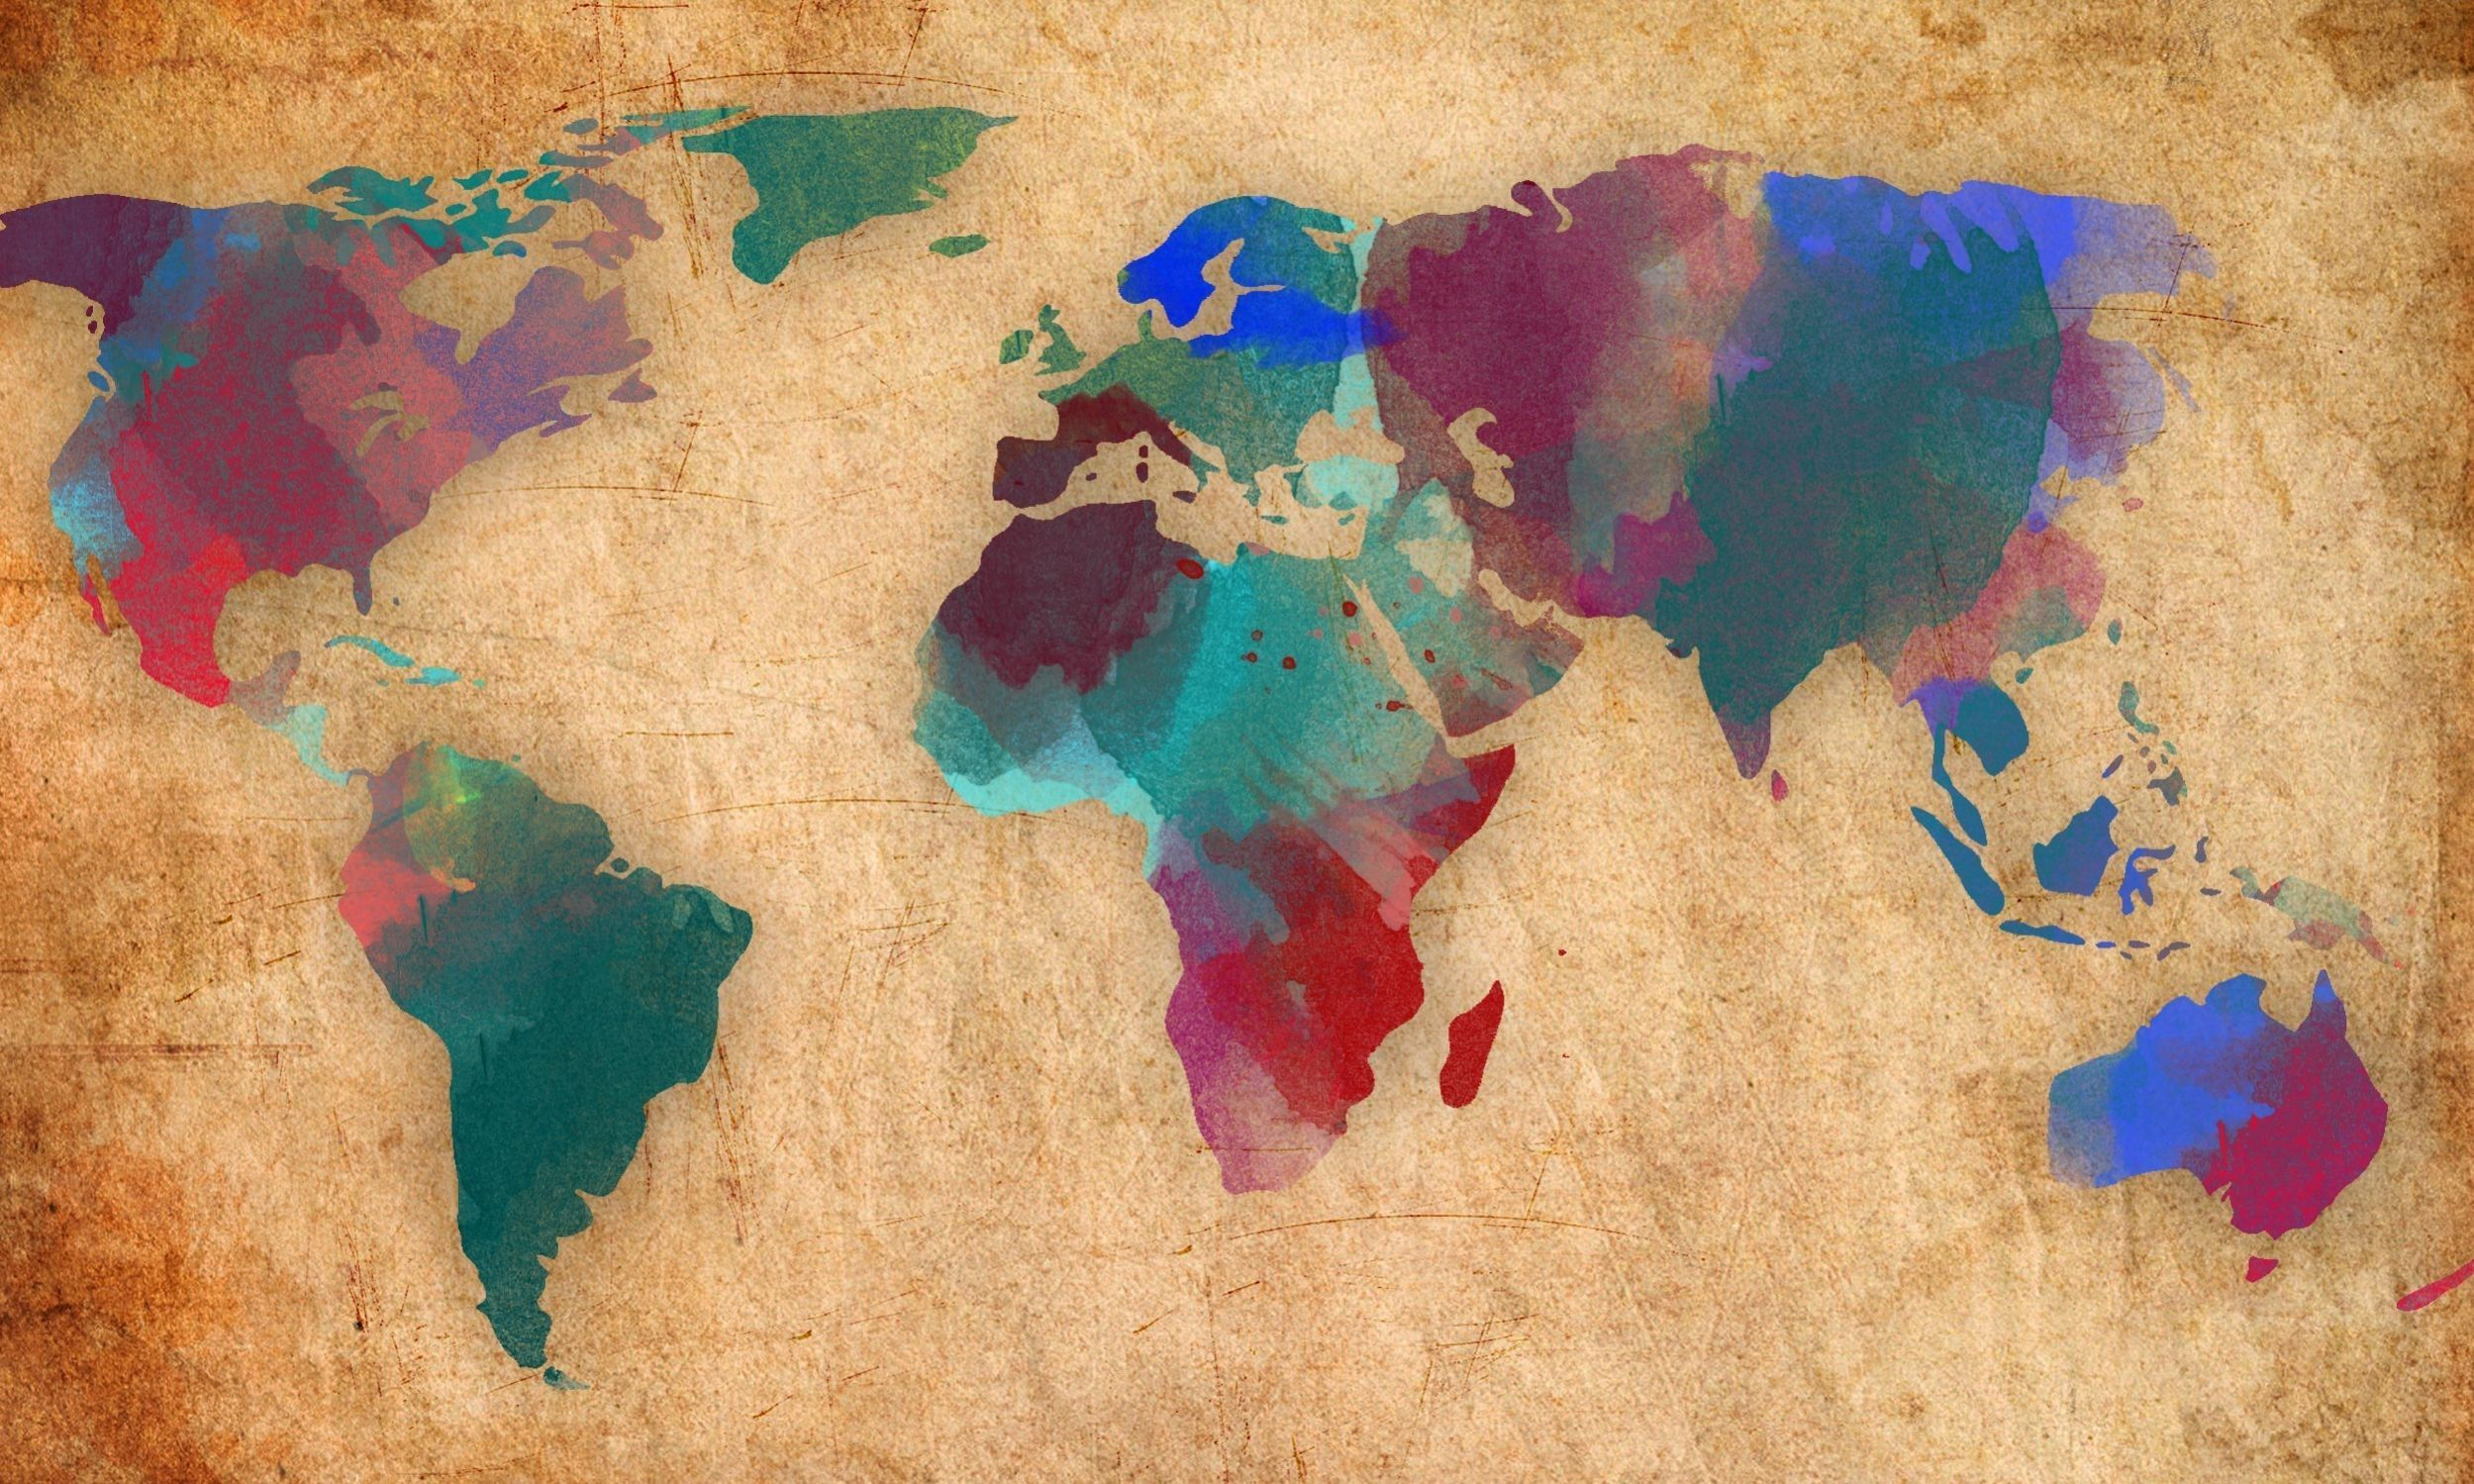 Colorful World Map Background World Map Hd Wallpaper For Pc Worldmap Hd World Map Backgrounds World Map Hd Wallp Map Wallpaper Colorful Map World Map Wallpaper